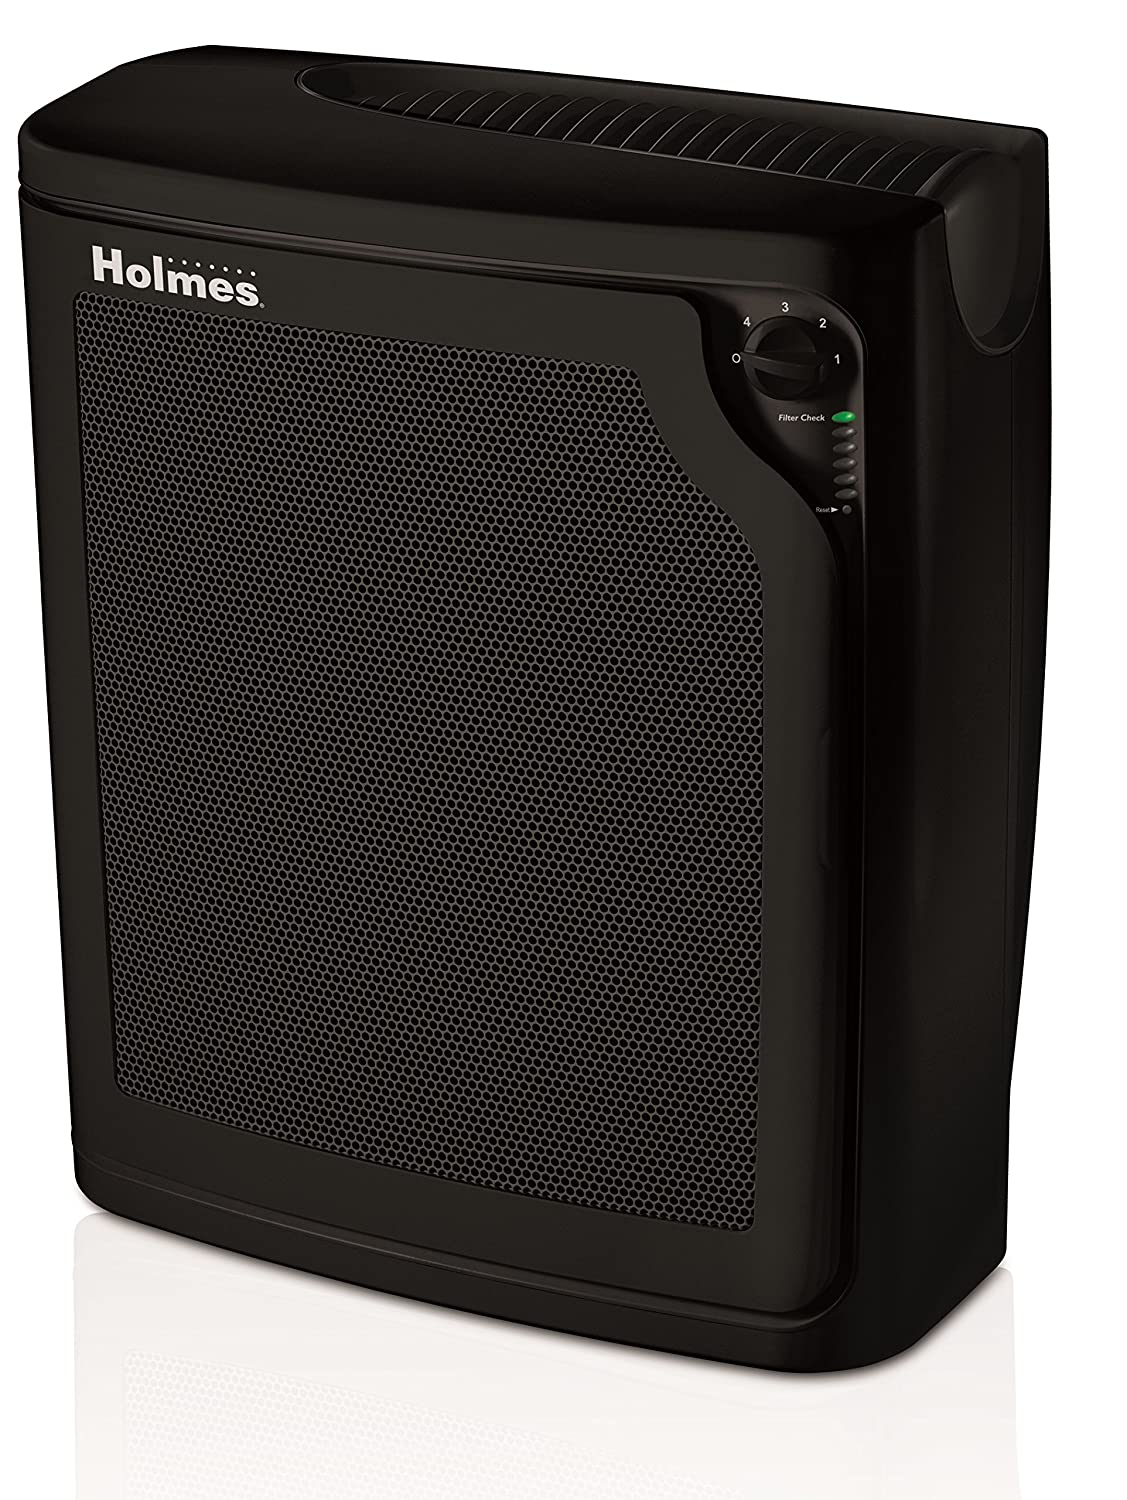 Holmes Large Room 4-Speed True HEPA Air Purifier with Quiet Operation, Black